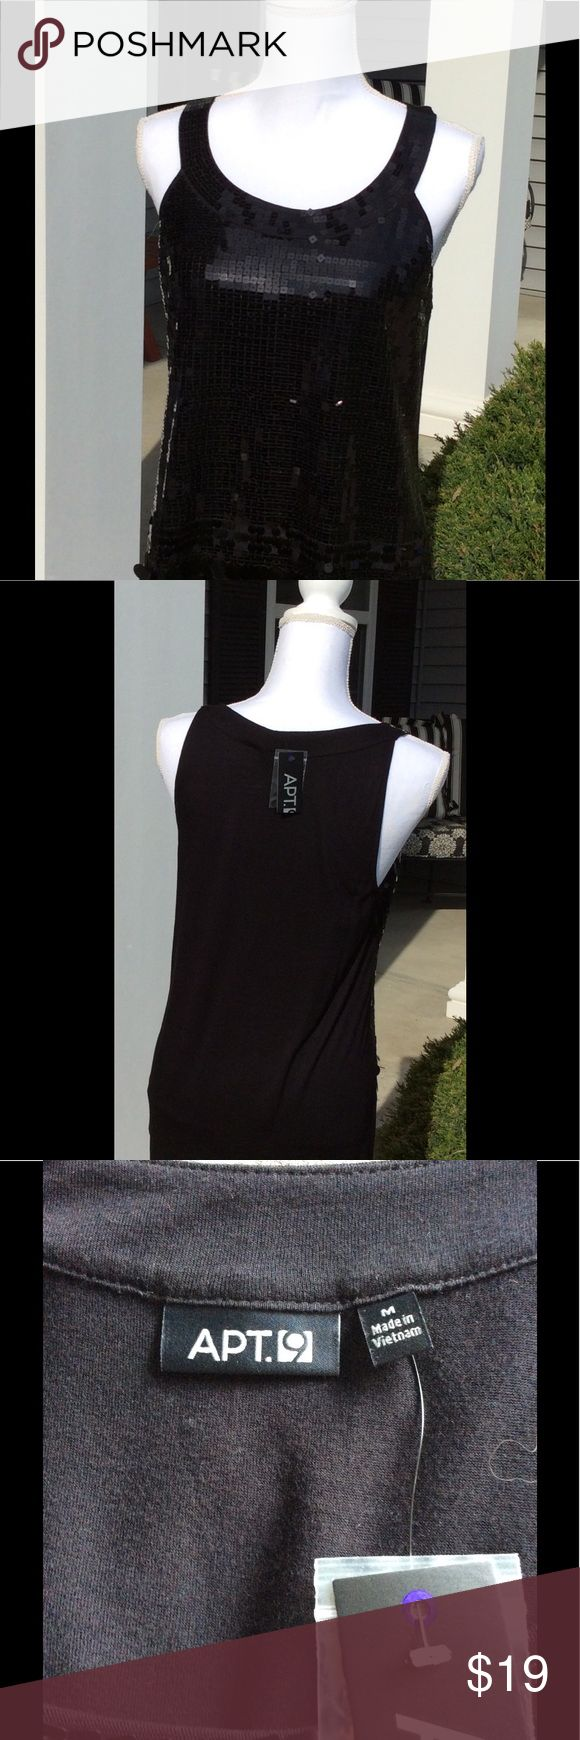 Apt. 9 black sequin tank size M Pretty black sequin tank by Apt. 9. Size M. NWT never worn. Great for date night or a girl's night out. Apt. 9 Tops Tank Tops